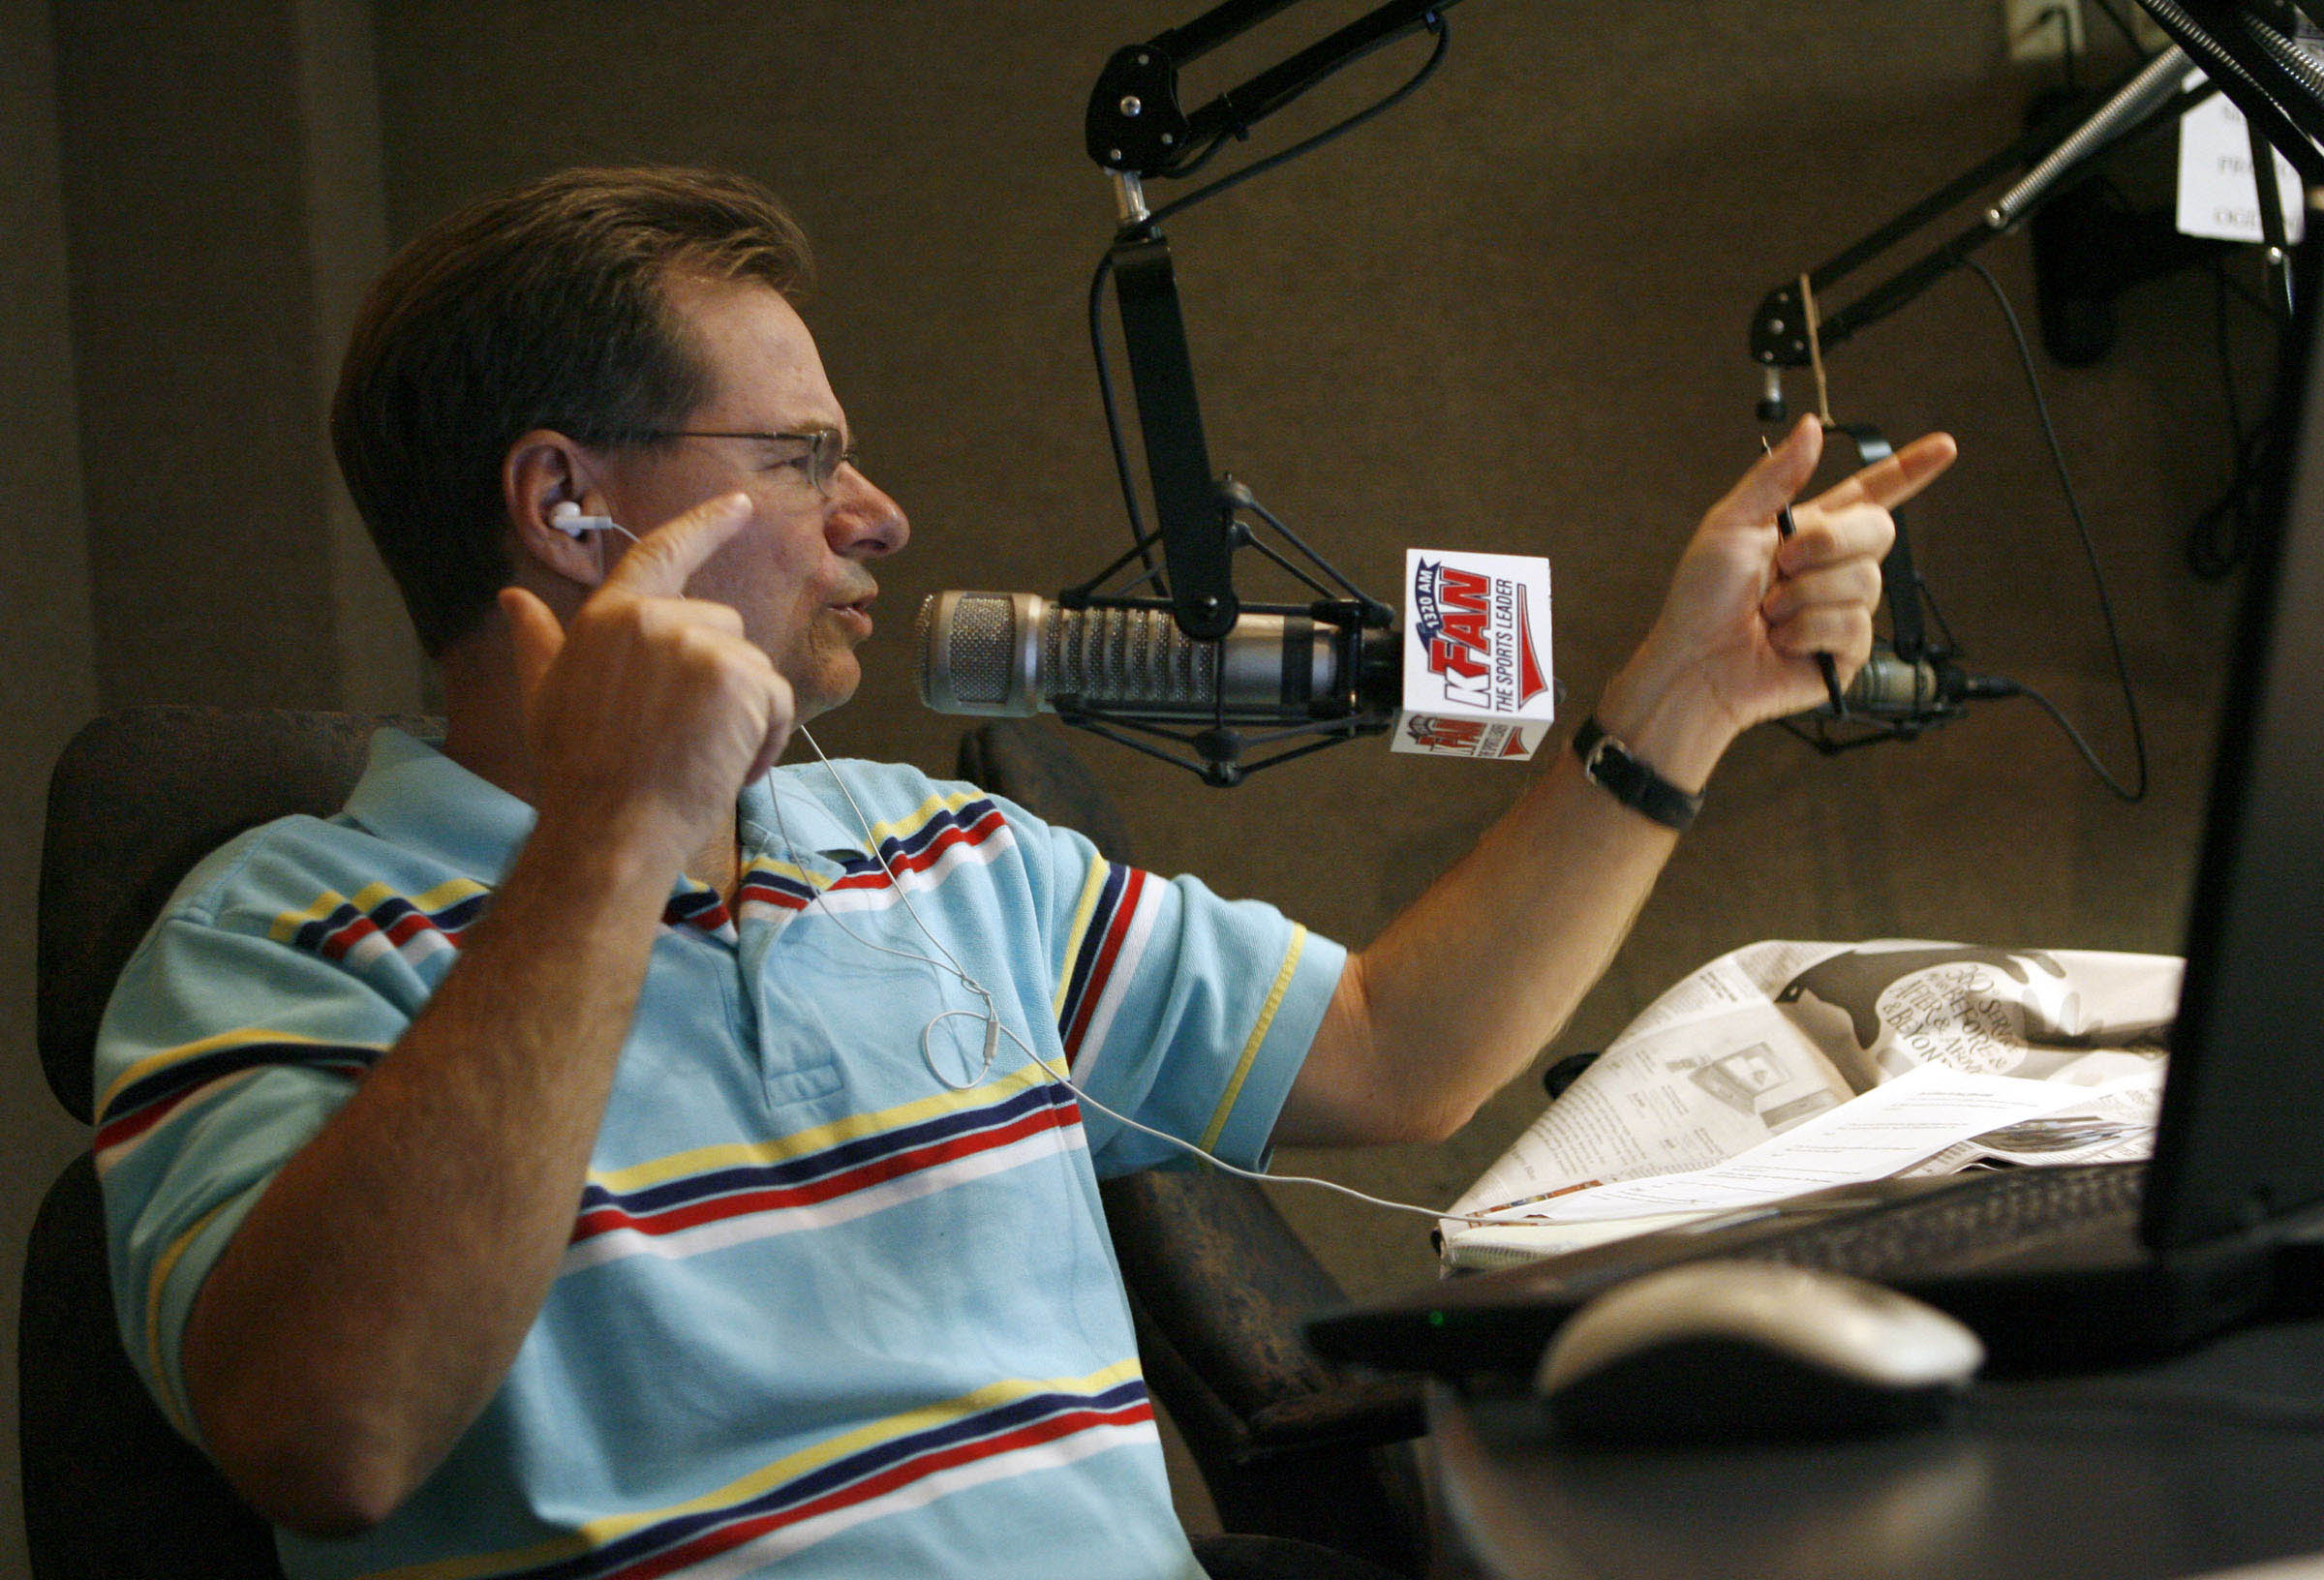 With an increasingly competitive Salt Lake sports-radio market we stop in to see KFAN morning hosts David James and Patrick Kinahan, pictured, as they interact with one another in the (